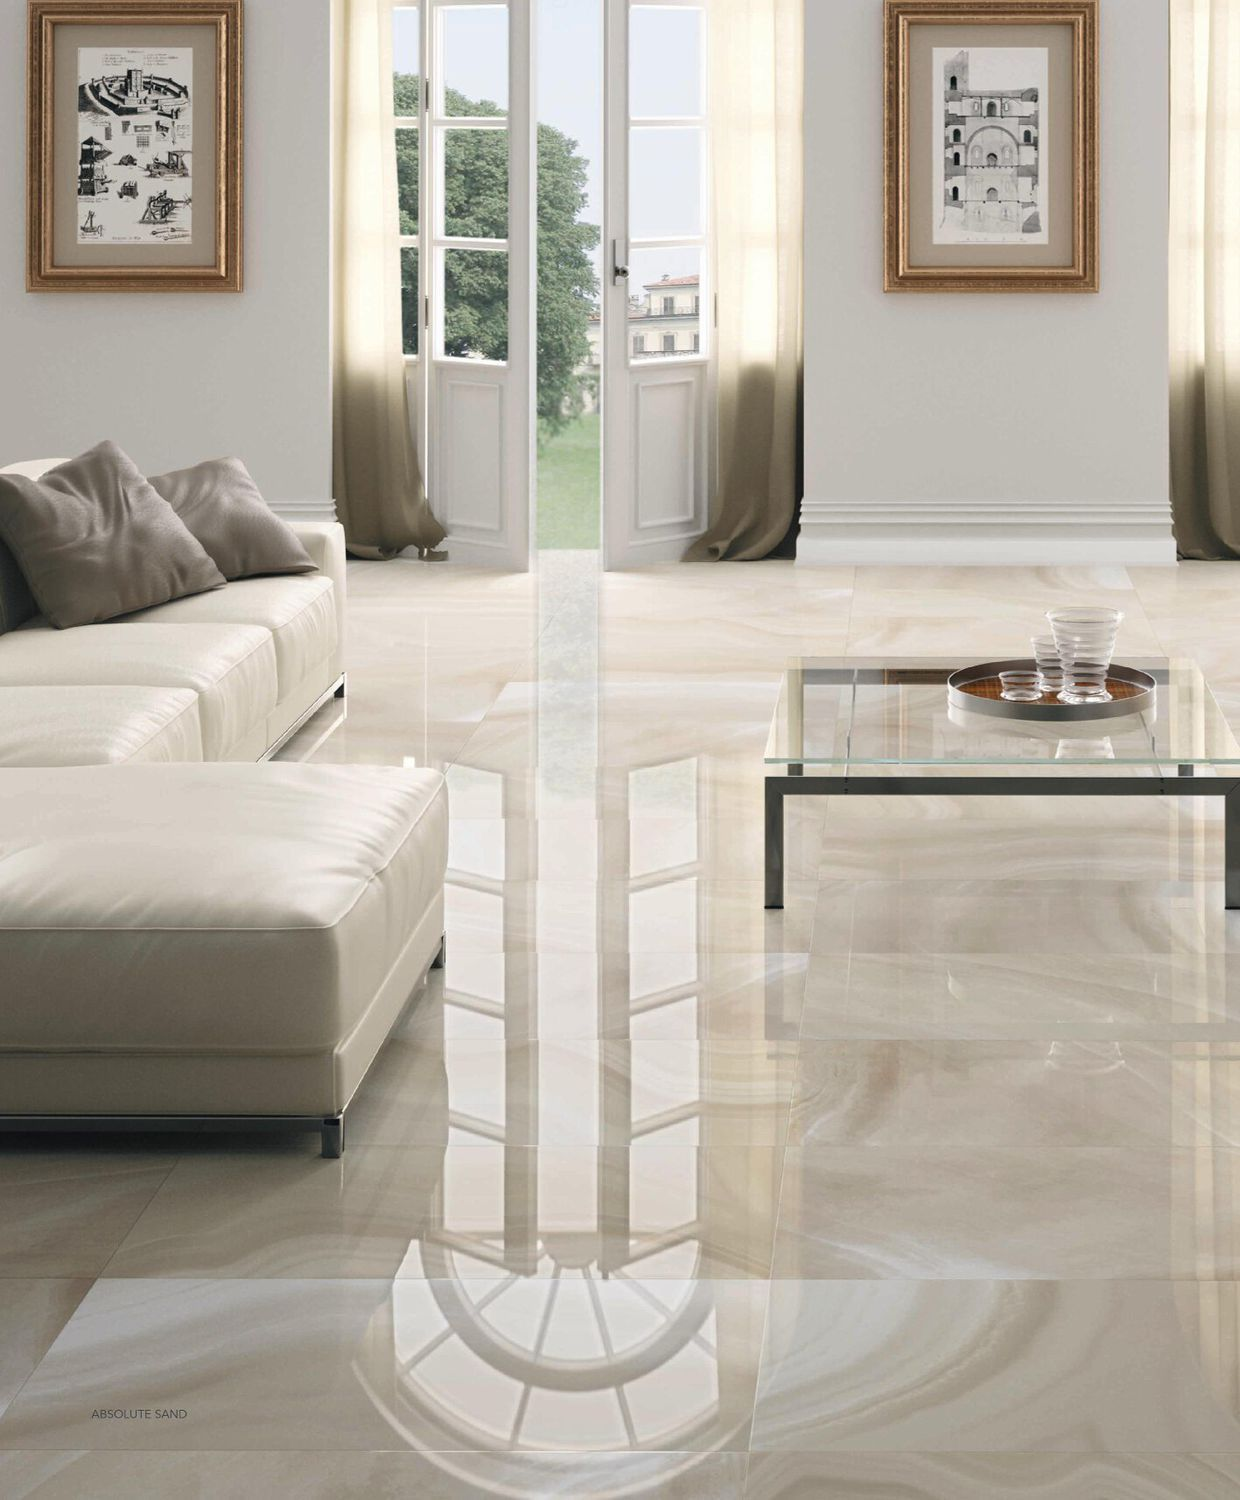 Living Room Floor Tiles Design Adorable Floor Tile  Porcelain Stoneware  Highgloss  Stone Look High Decorating Design